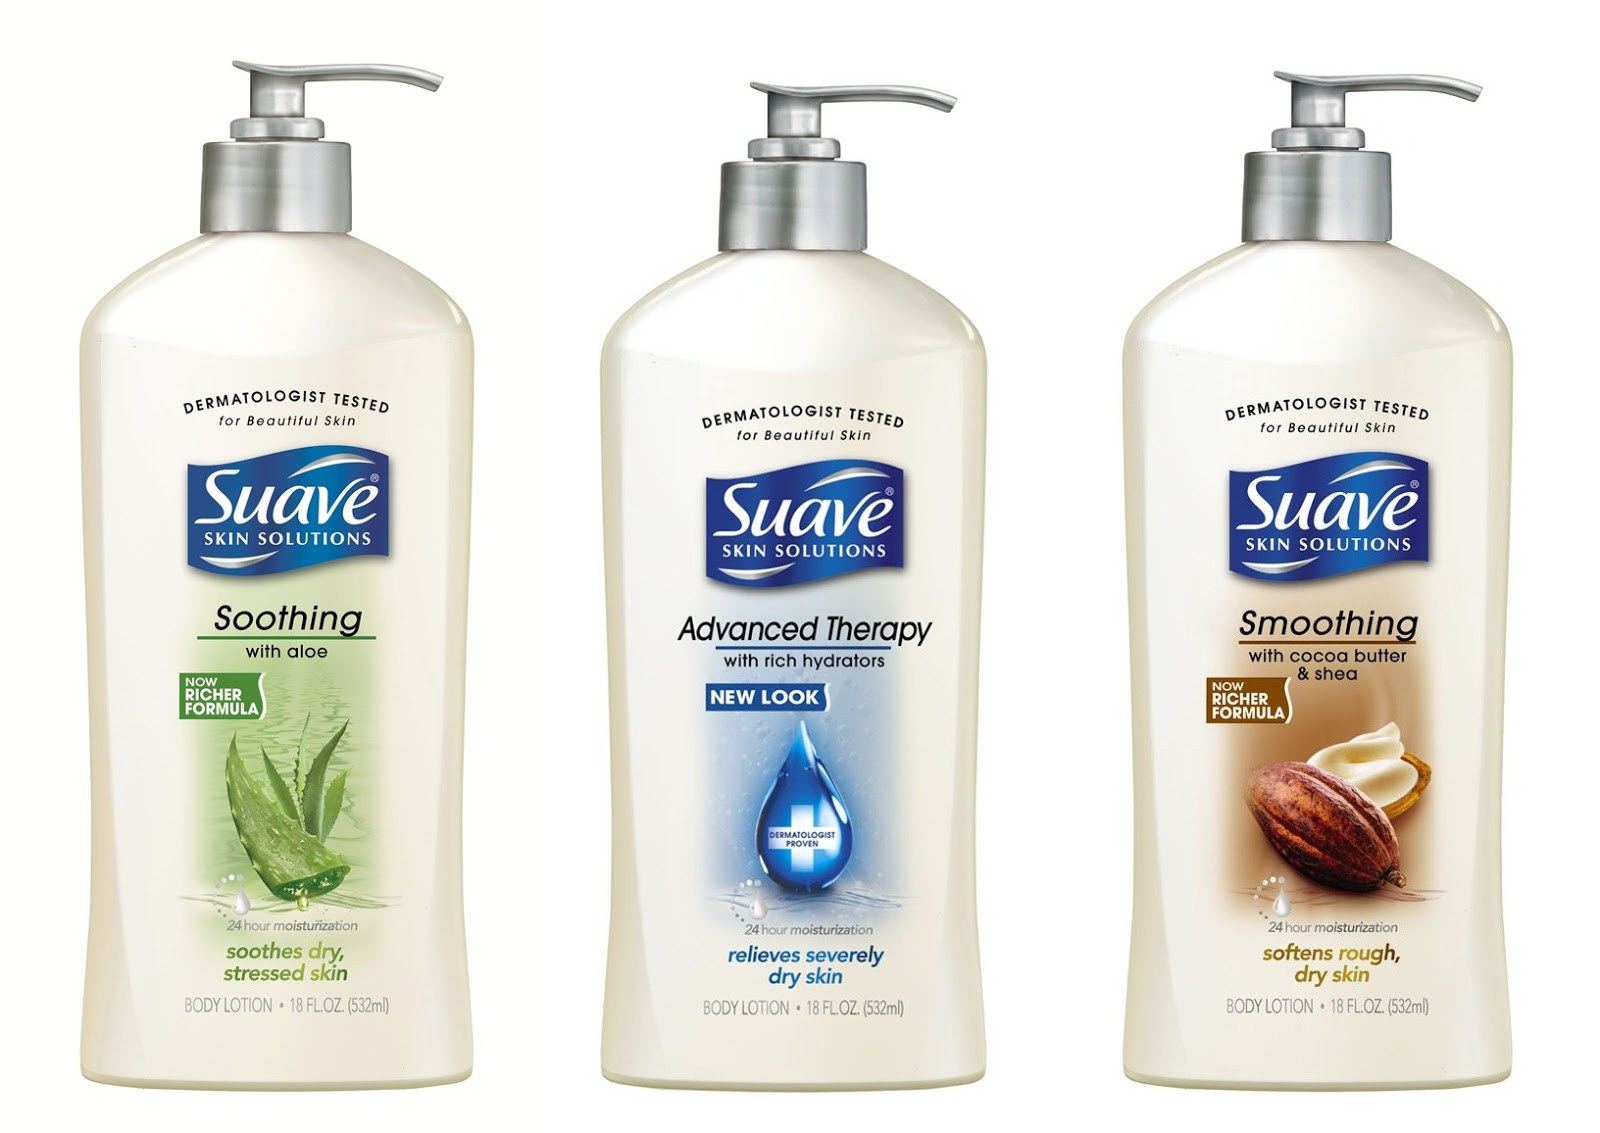 FREE Suave Lotion at Walmart!